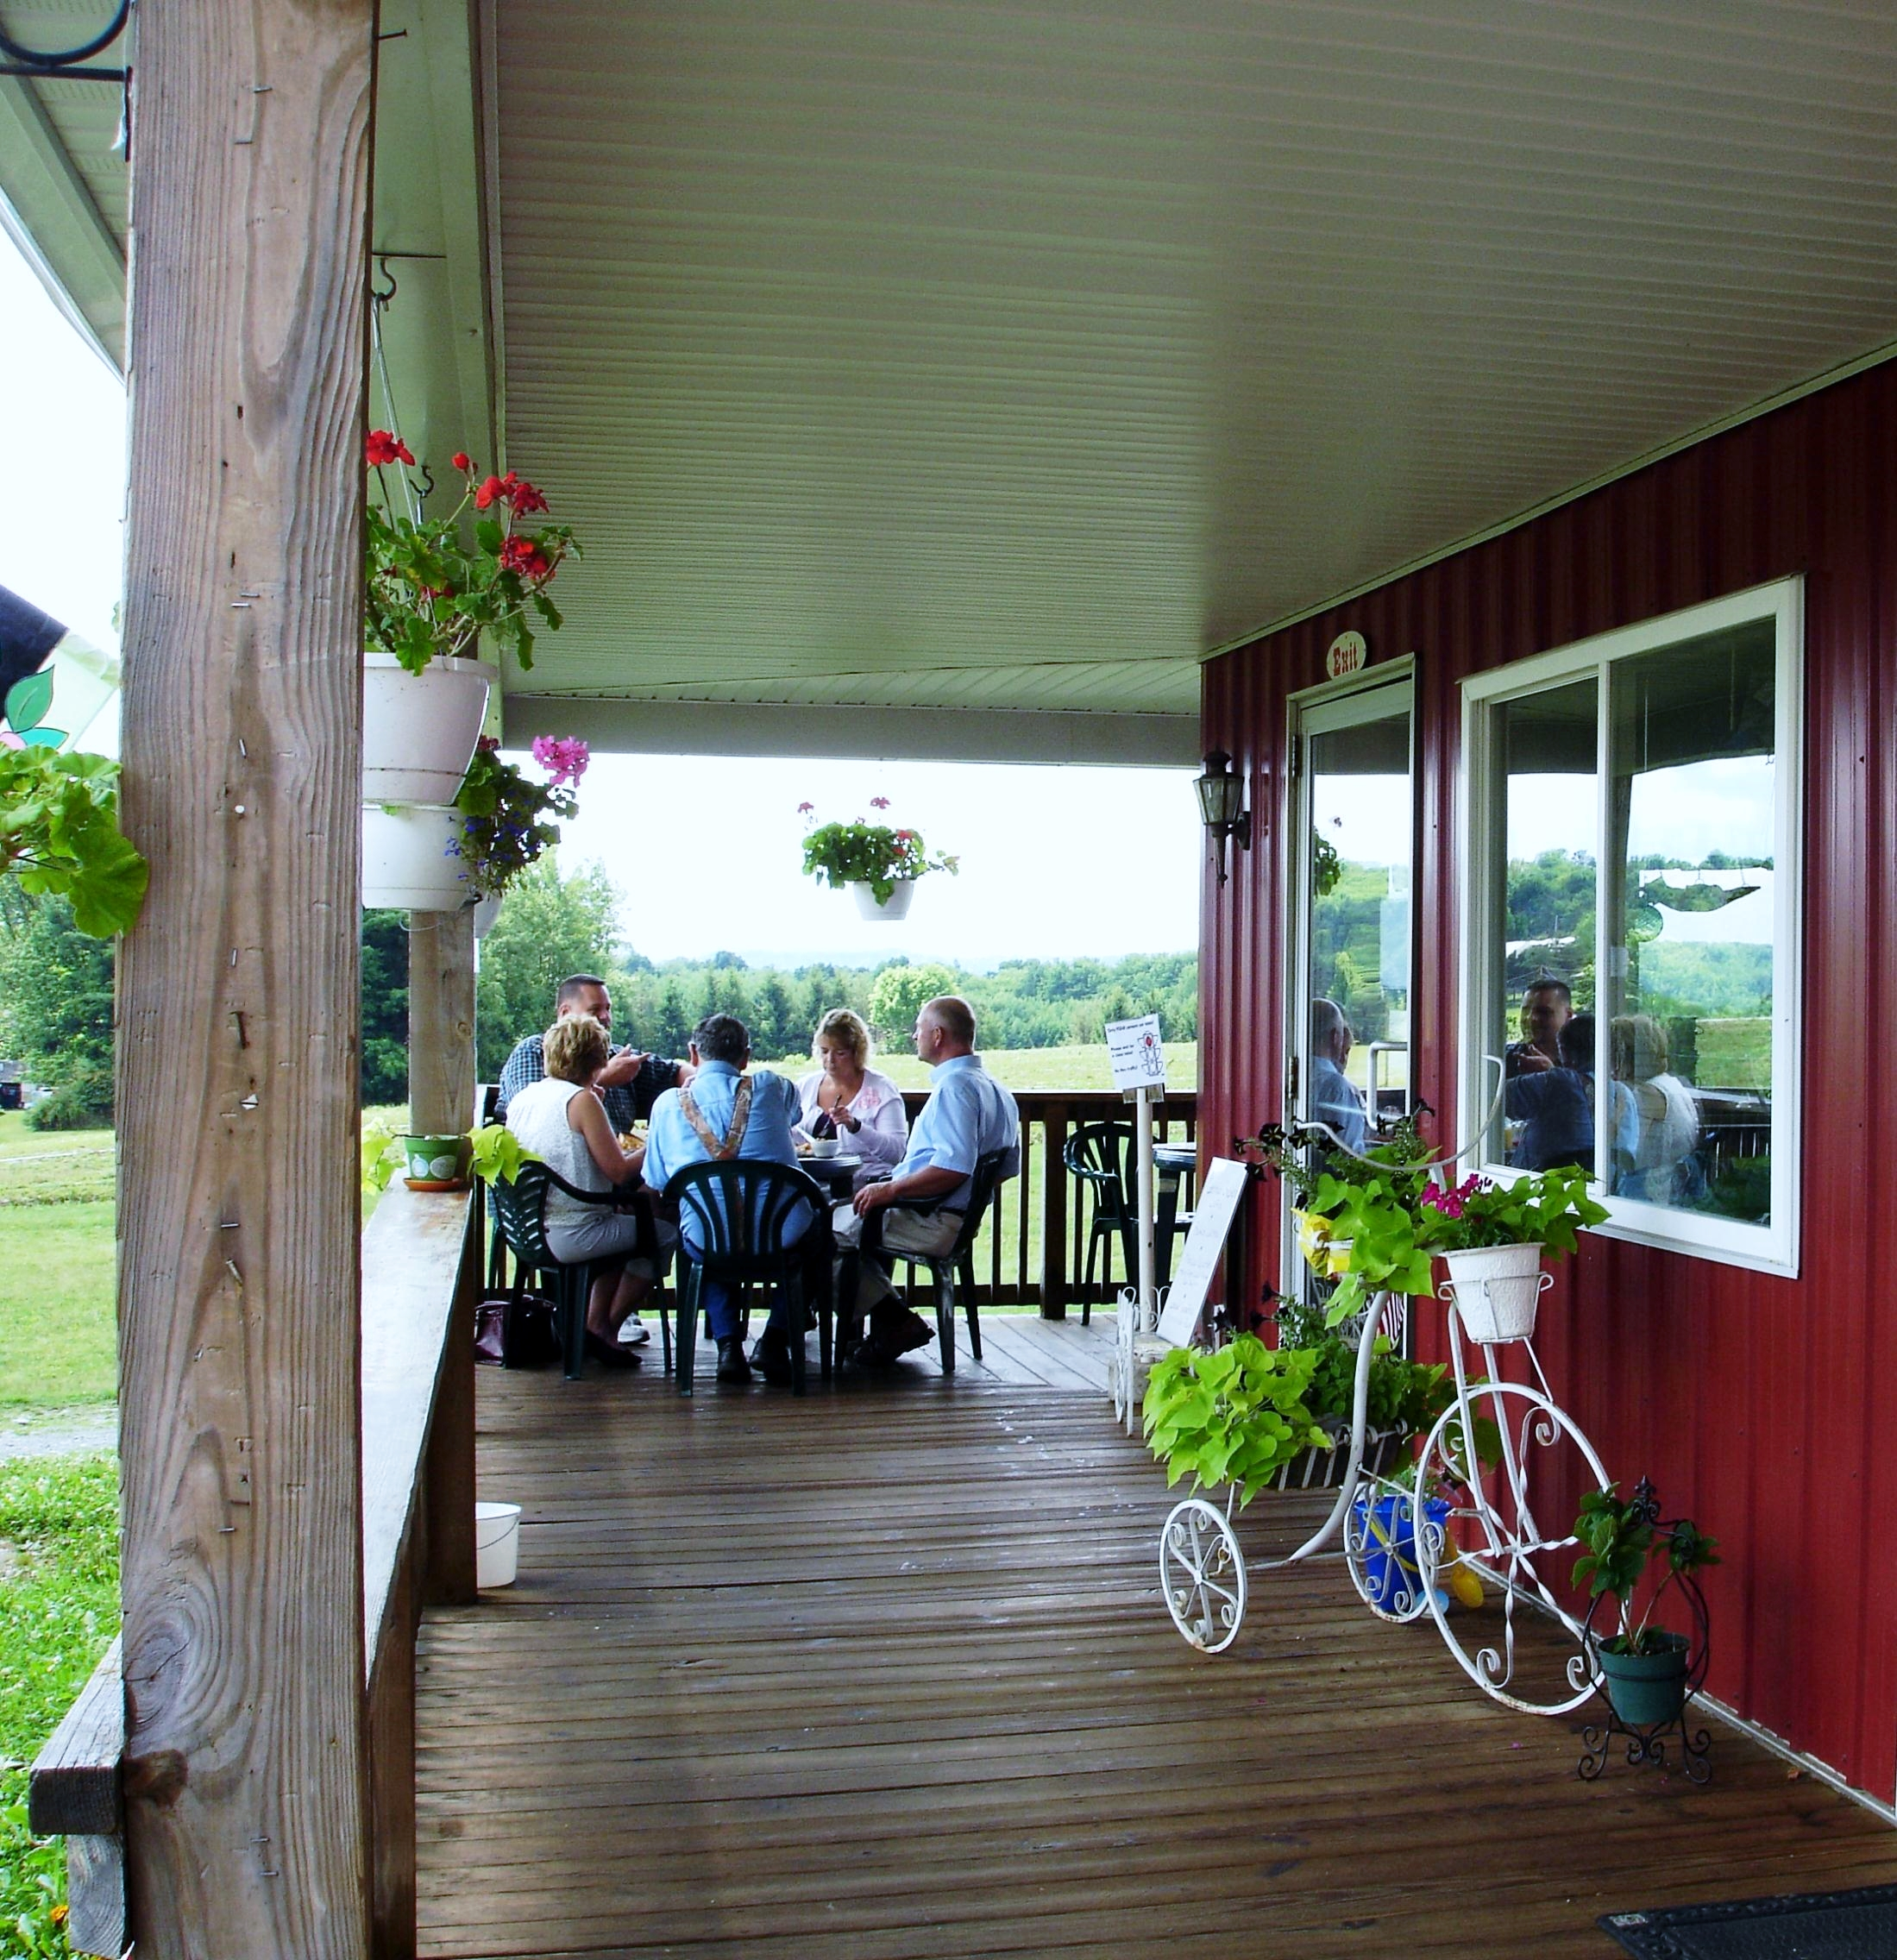 Prefer to dine in the fresh air with a view of the farm? There are tables on the porch.